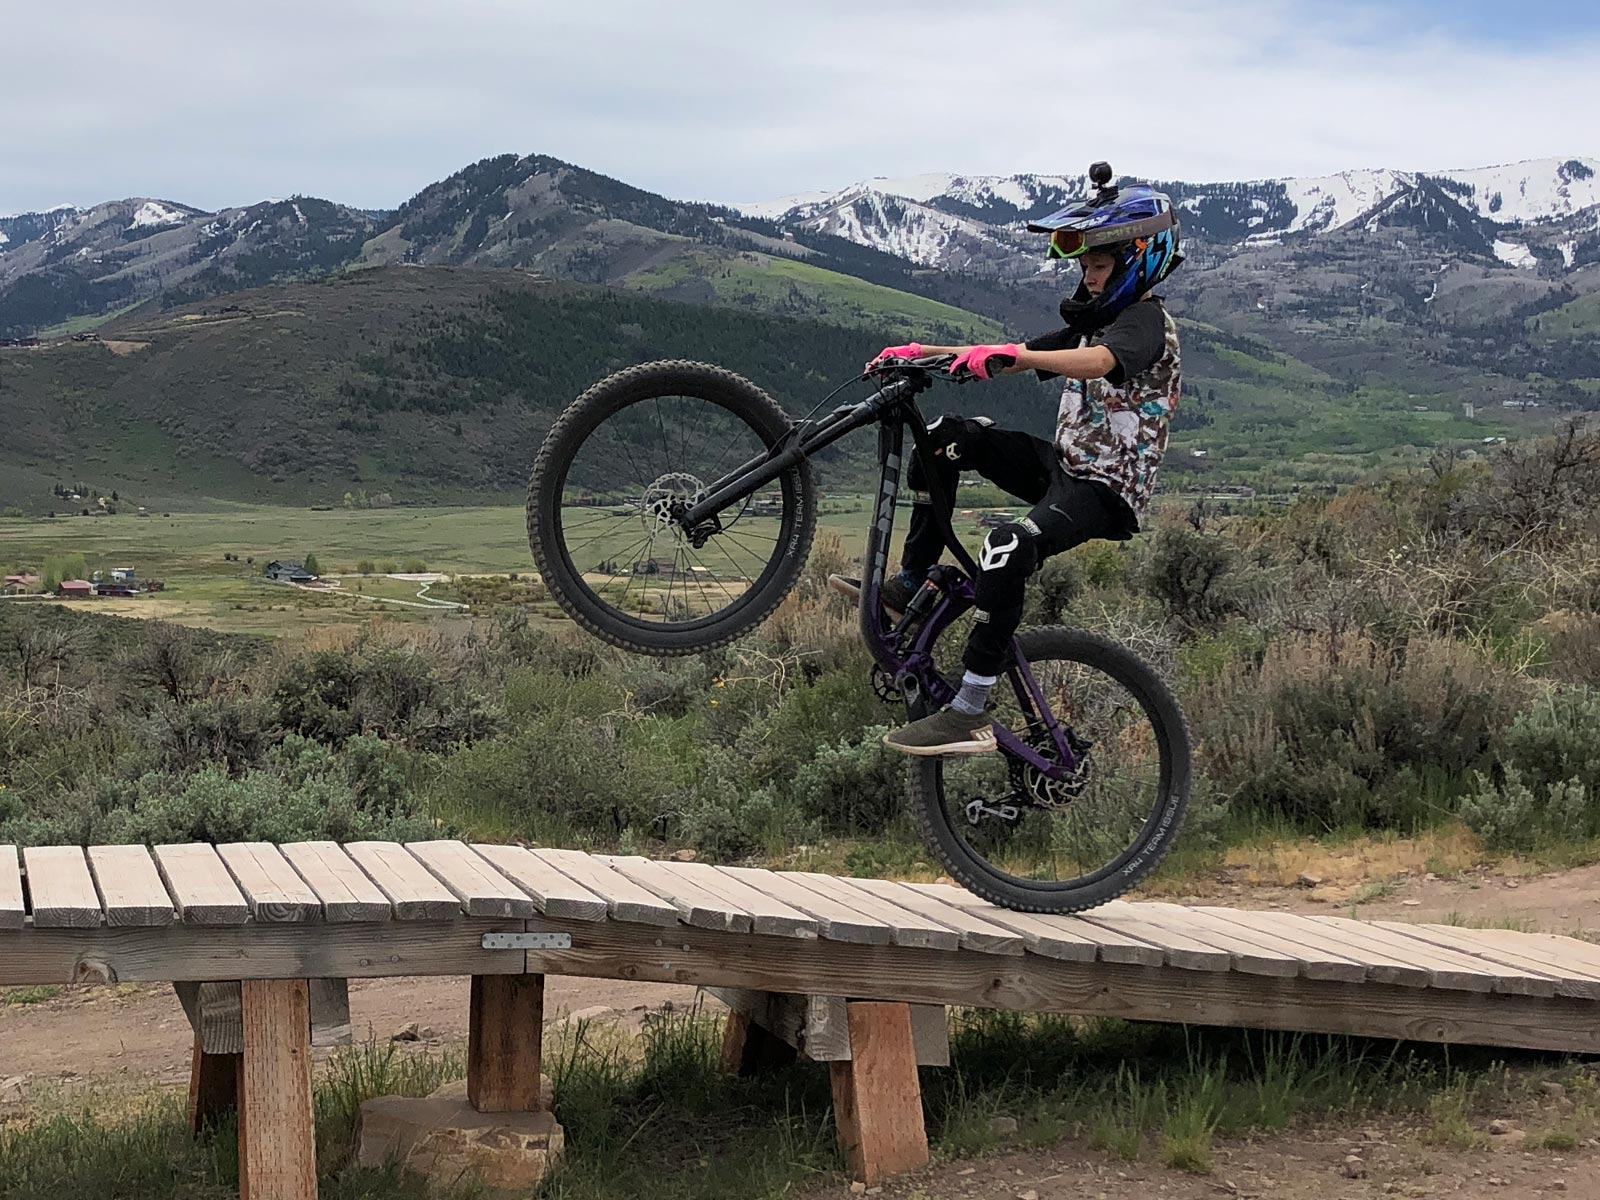 Wheelie mode on the Trek Fuel EX 8 in Park City